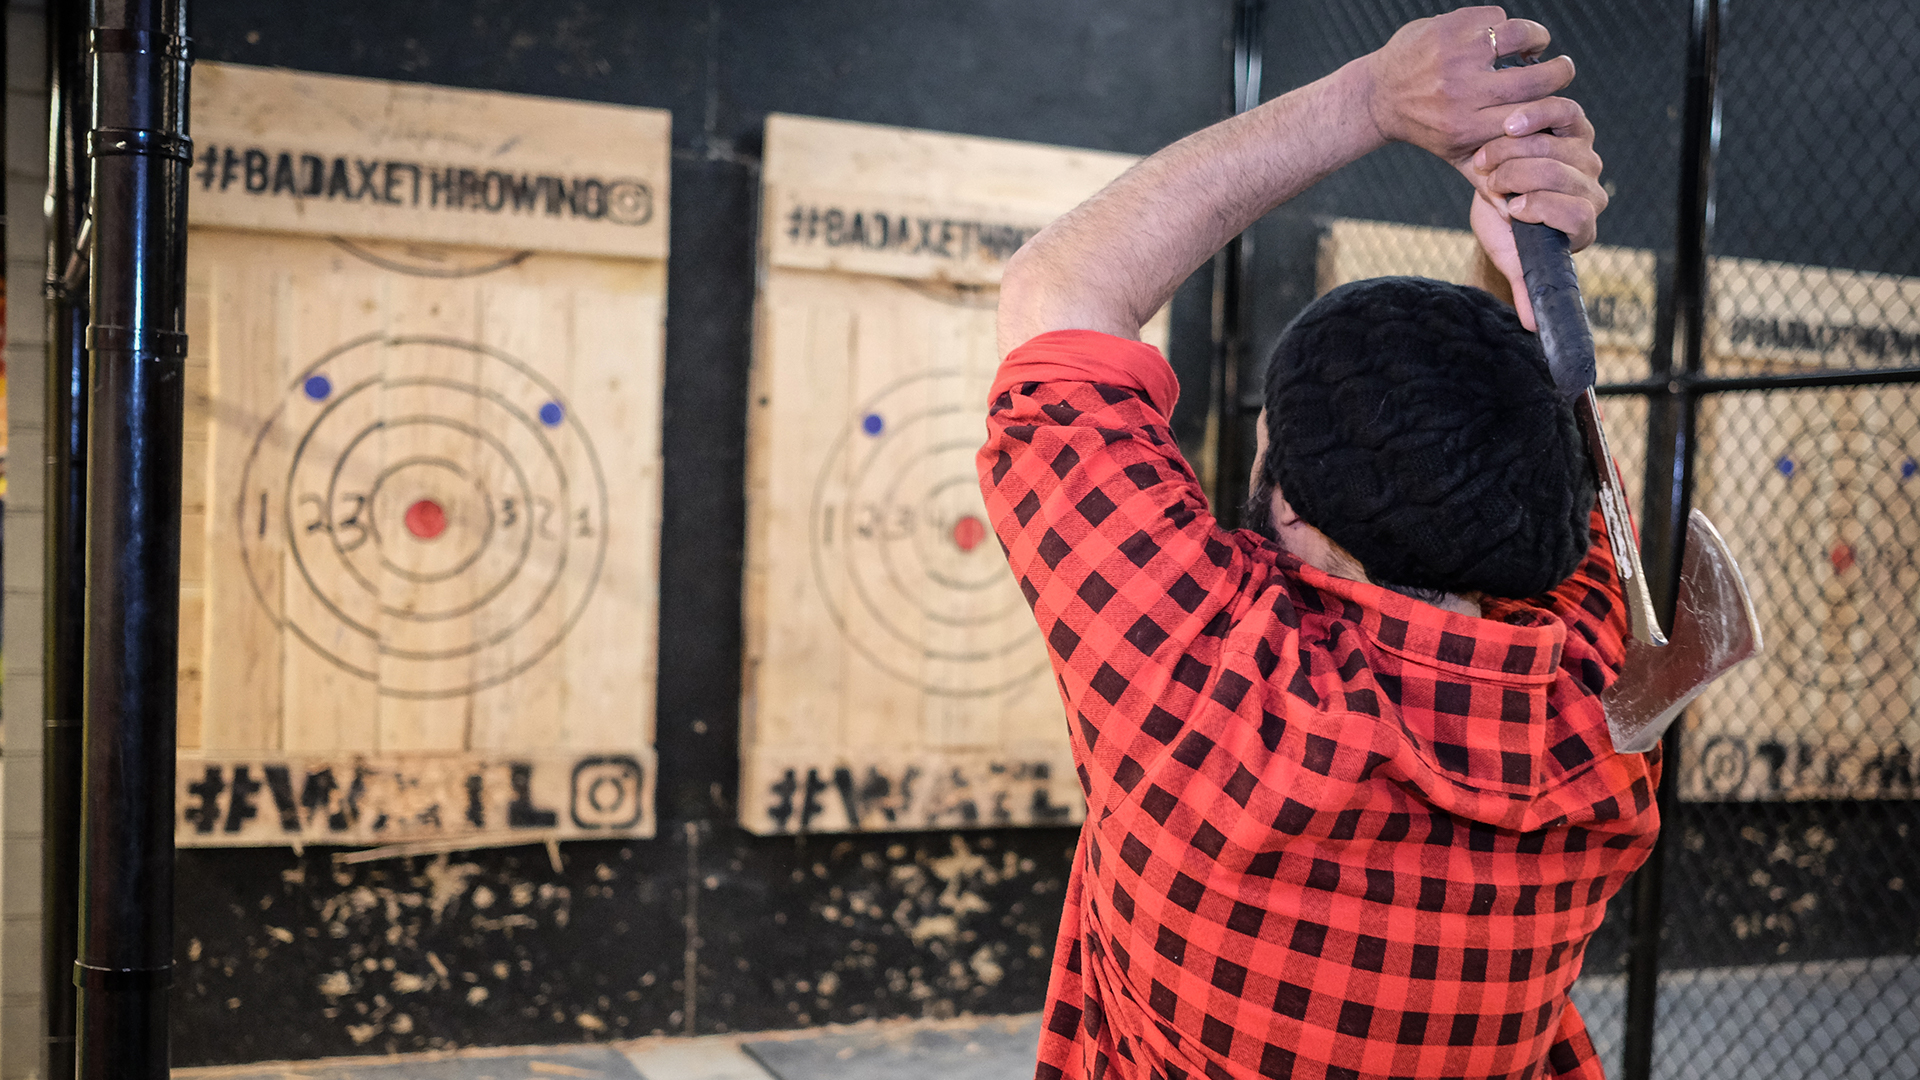 A man in red and black checkered flannel uses two hands to throw an axe at Bad Axe Throwing in Chicago